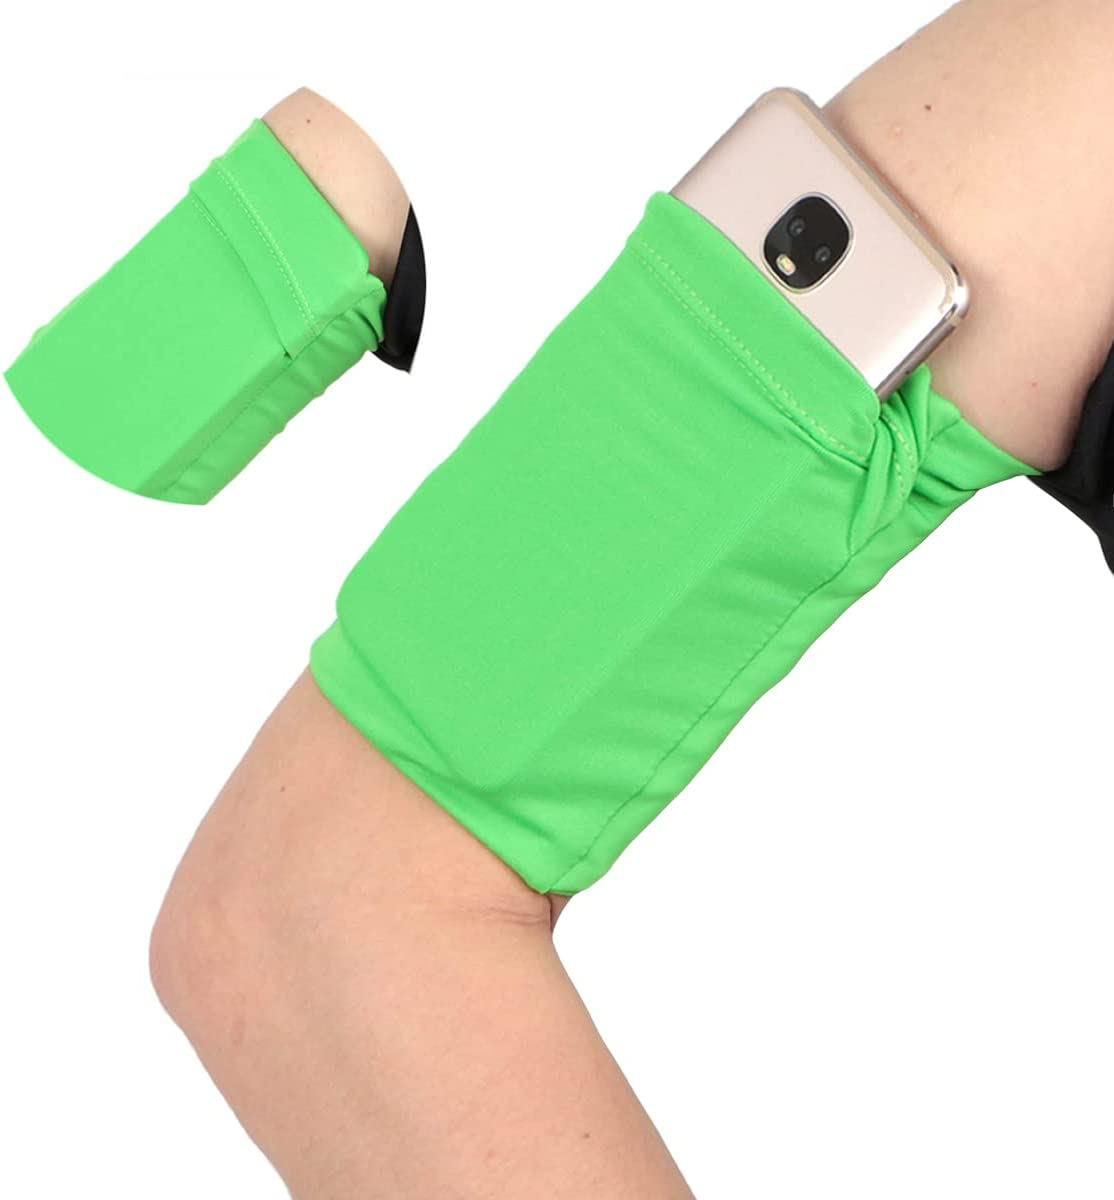 Small Walking Armband Wristband for Cell Phone - Cellphone Arm Band Sleeve Strap Pouch Pocket for Compatible with iPhone 6 6S 7 8 X XR XS 11 12 Pro for Hiking Camping Trekking - L5.7xW4.7'' Green